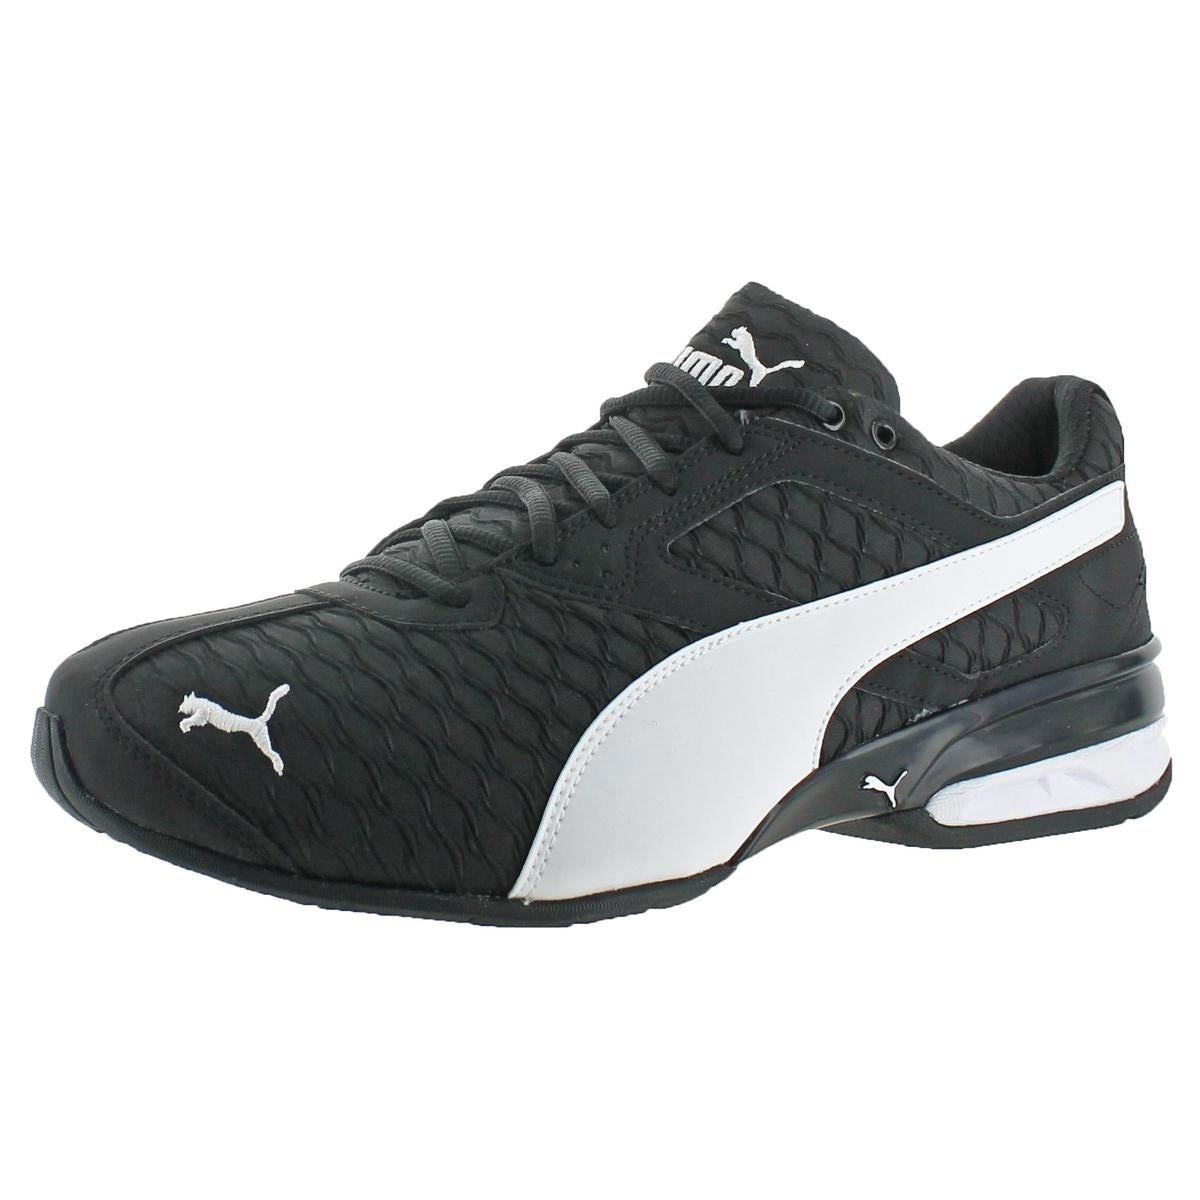 d70ecd95e74999 Shop Puma Mens Tazon 6 3D Running